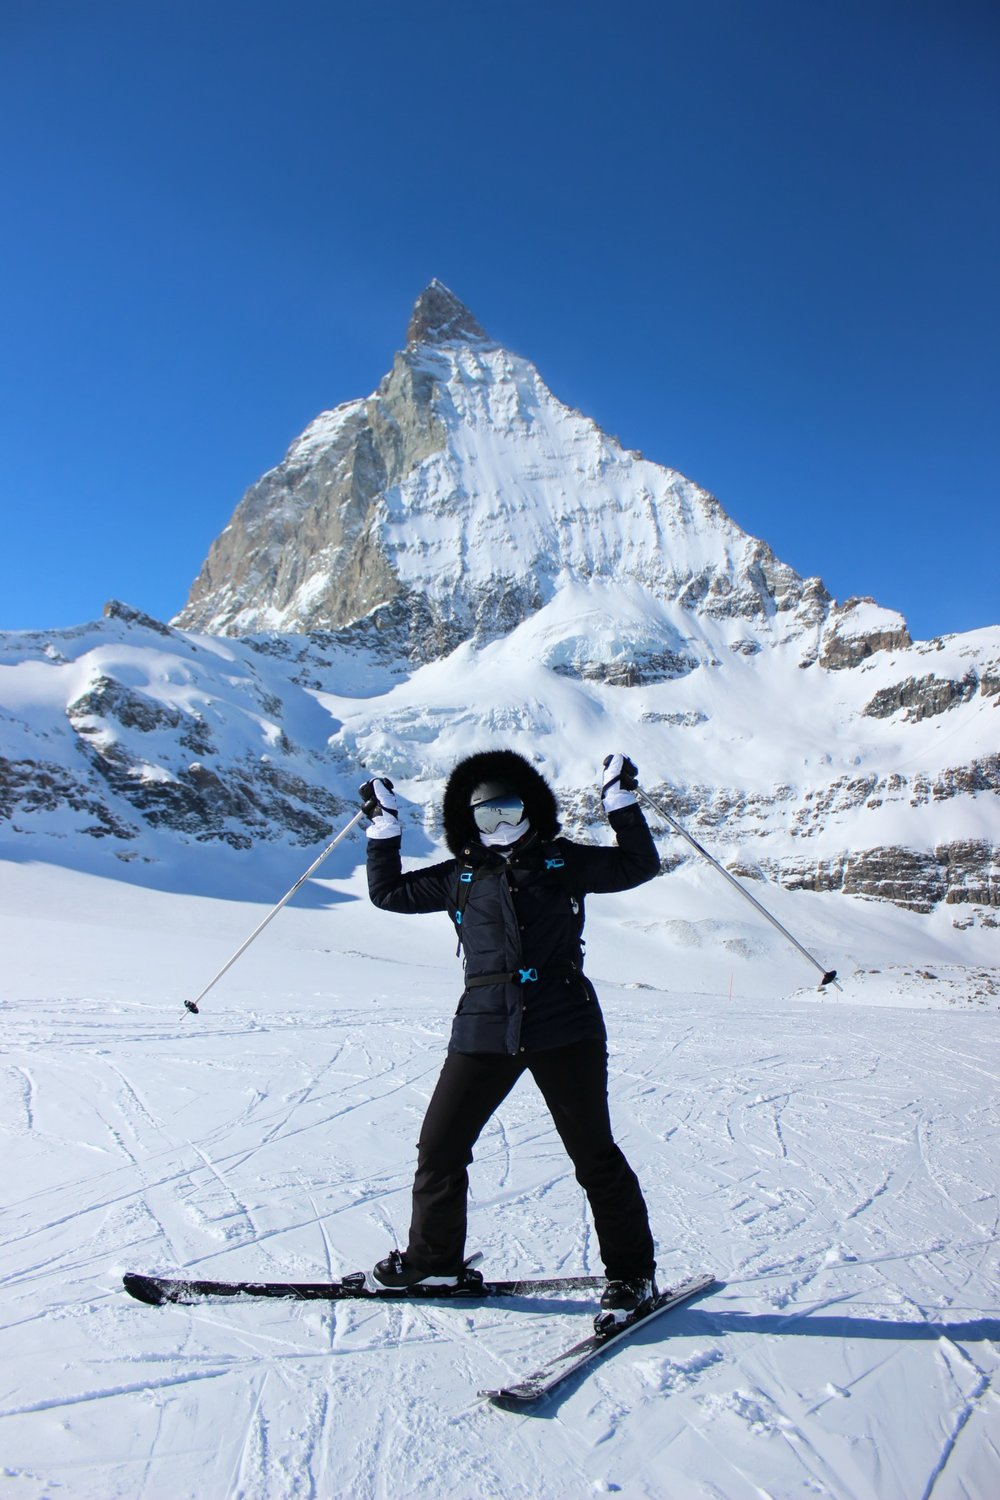 snow-zermatt-matterhorn-ski-eskimo-sticks-air.jpg